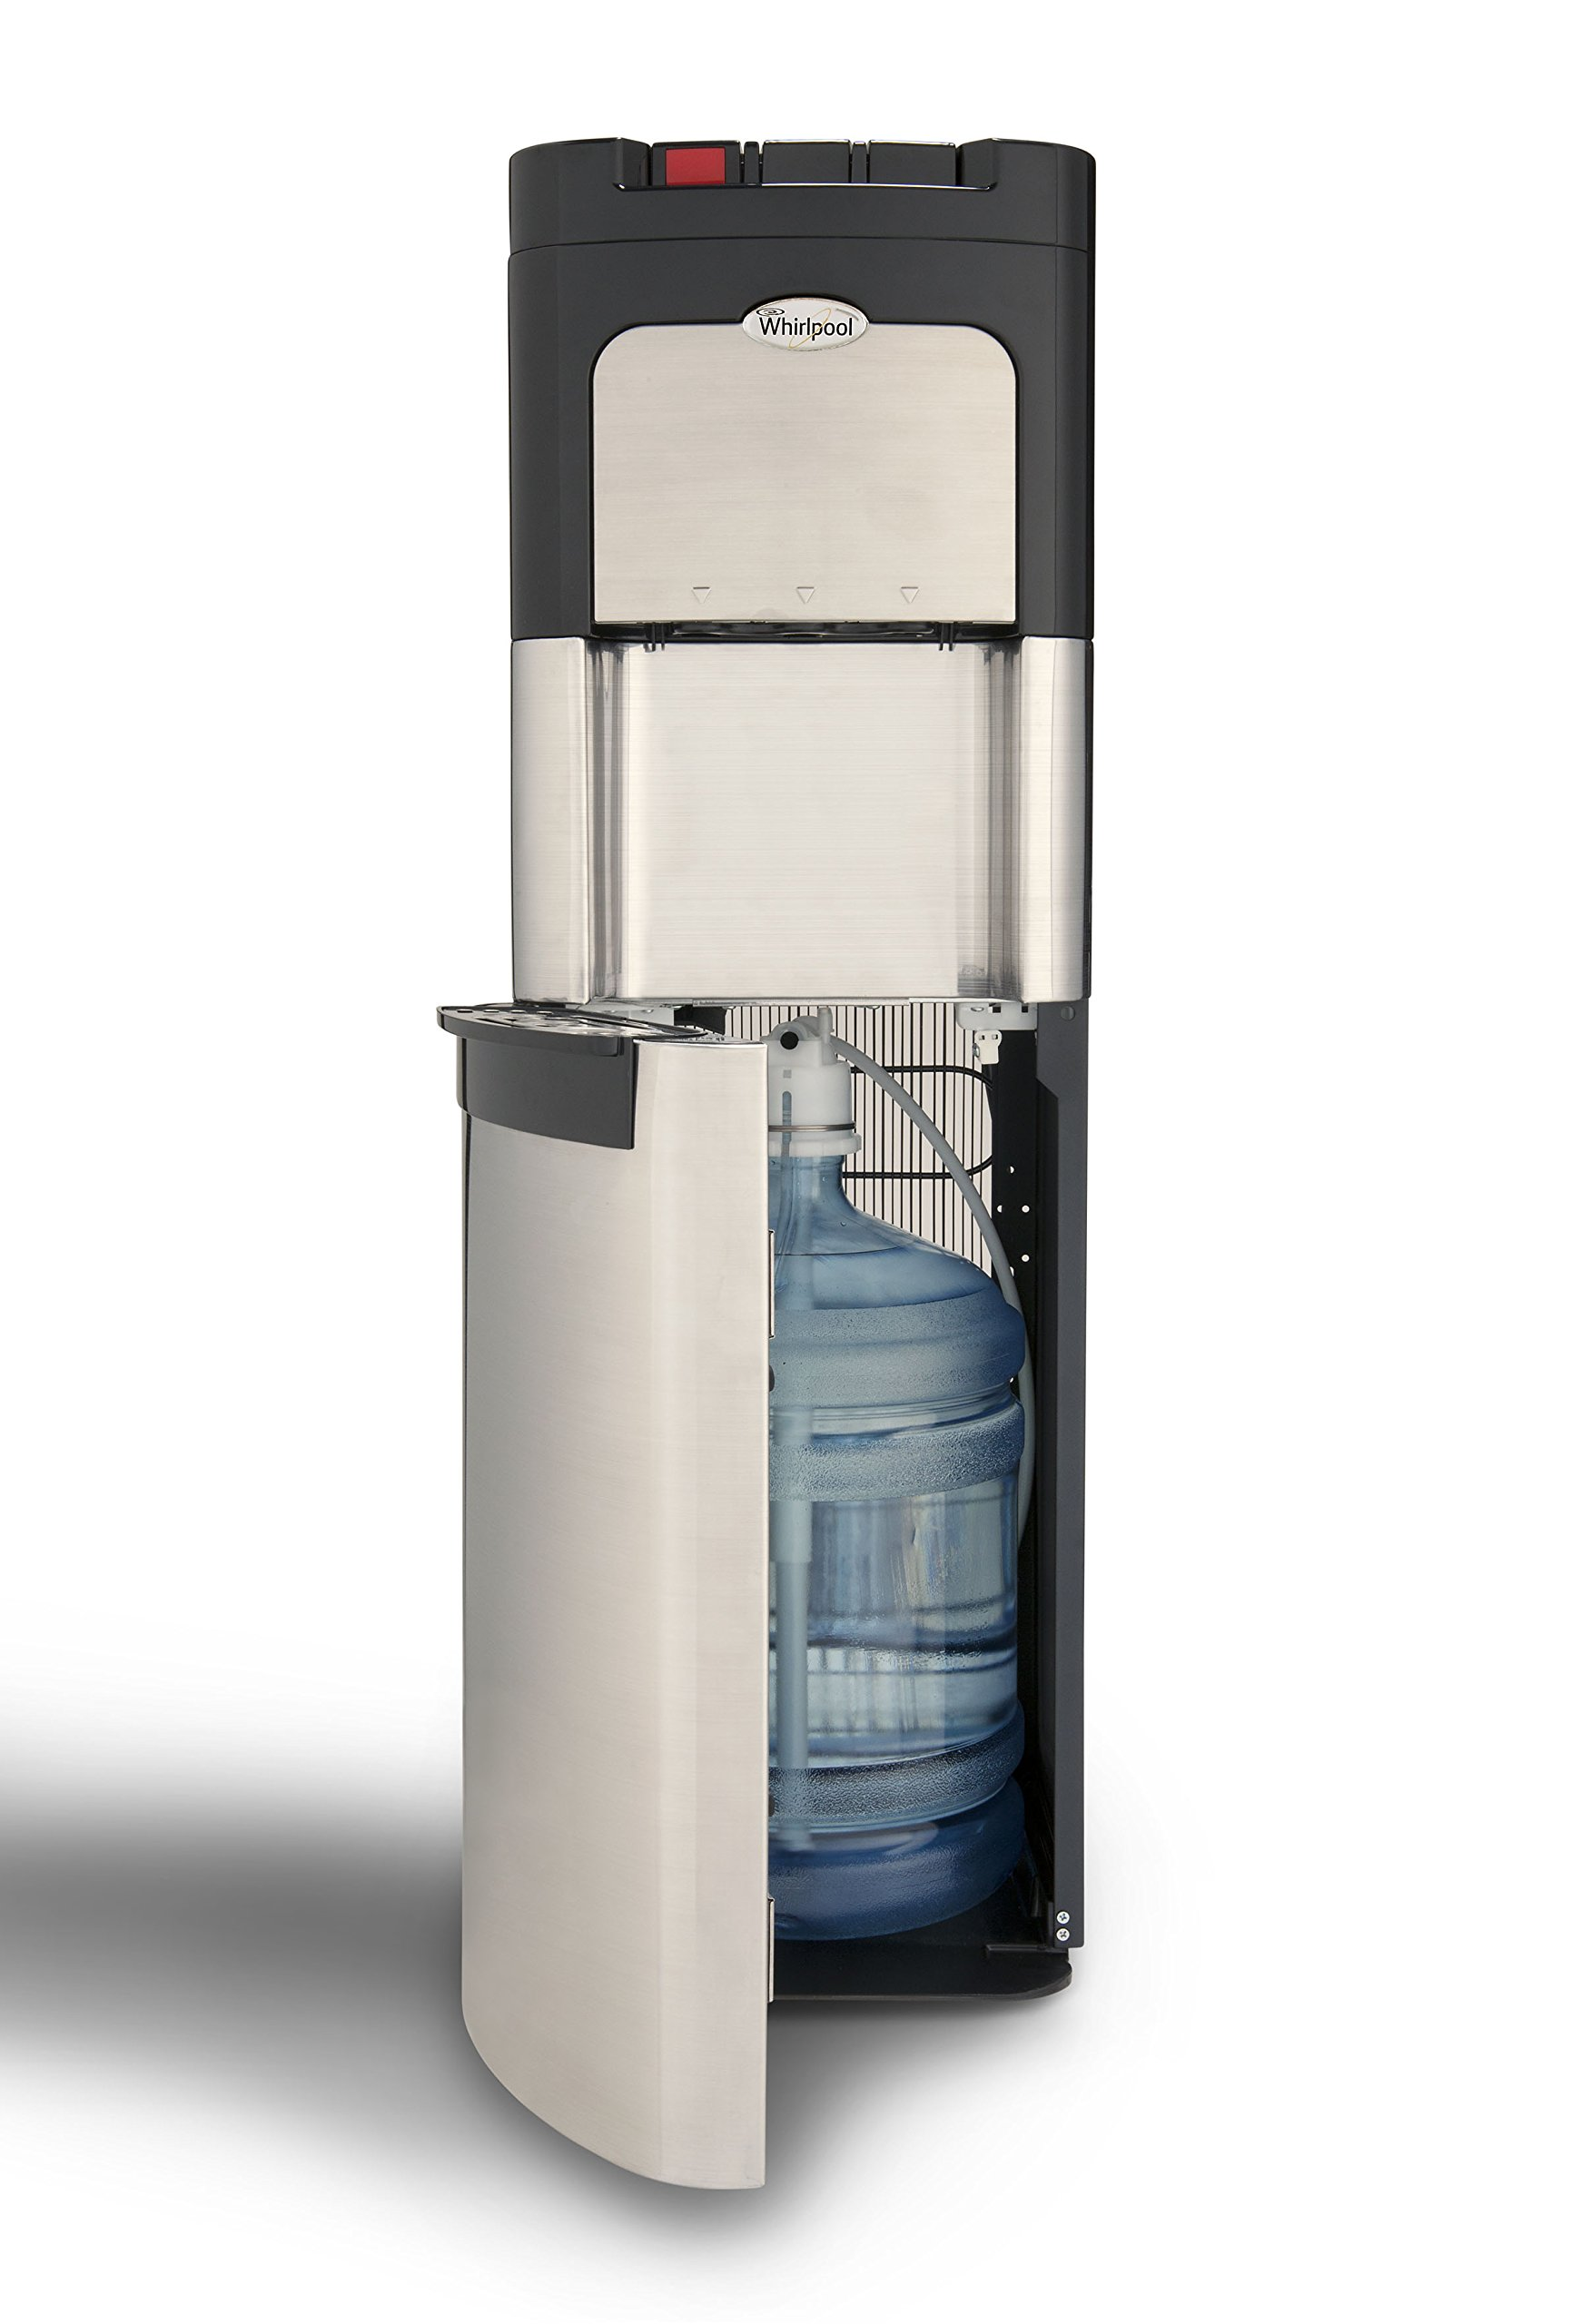 Whirlpool Bottom Loading Commercial Water Cooler Dispenser, Ice Chilled Water, Steaming Hot, Full Stainless Steel Water Dispenser